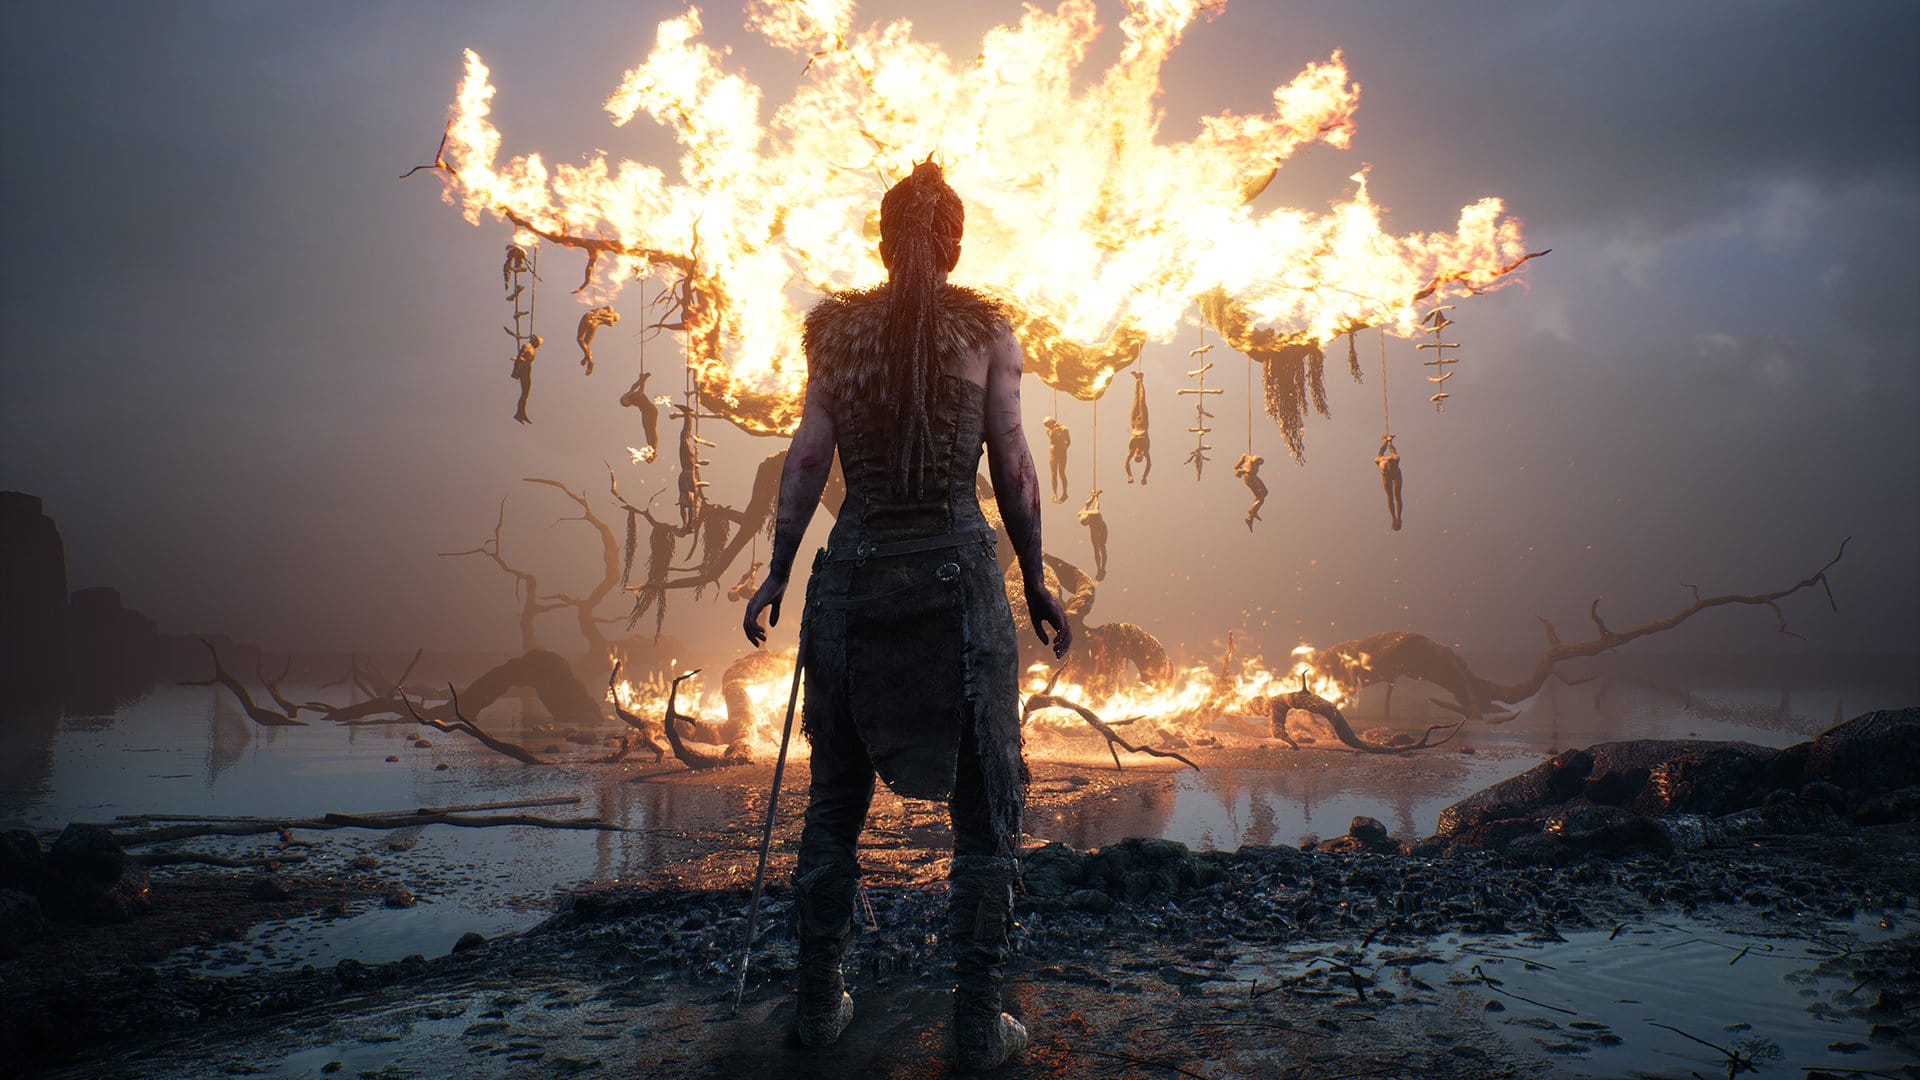 Hellblade Tree Fire Imagery